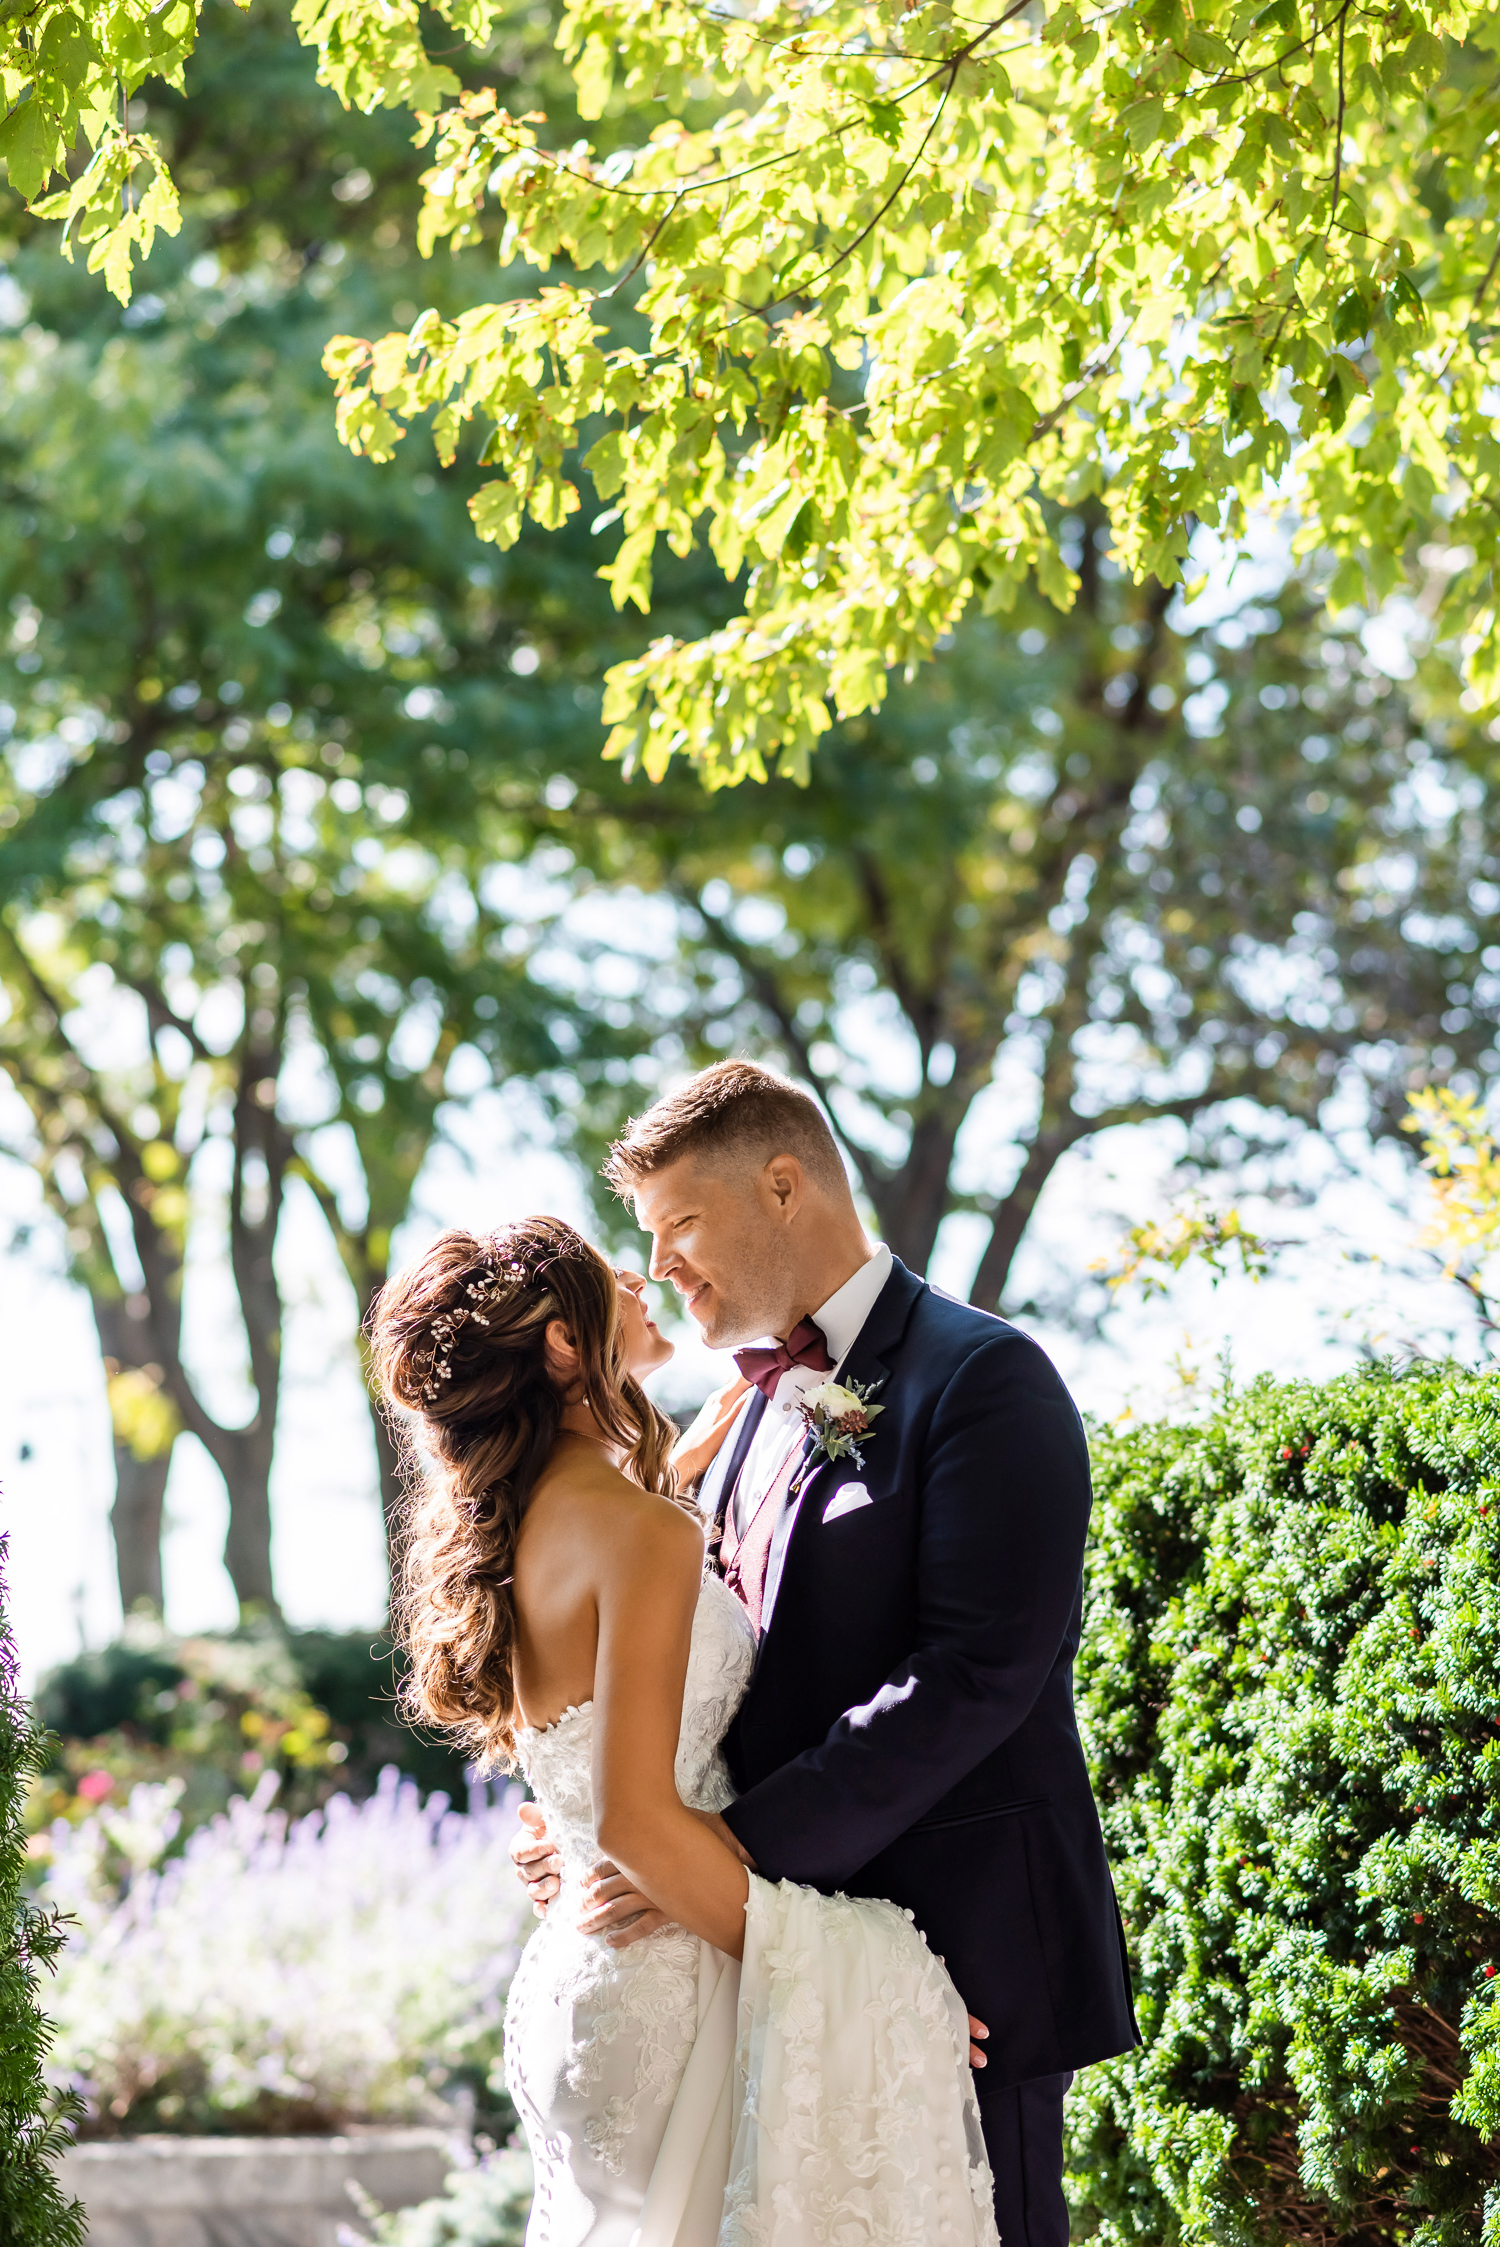 Emma_Cleary_Photo_and_Video_wedding_photos_0007